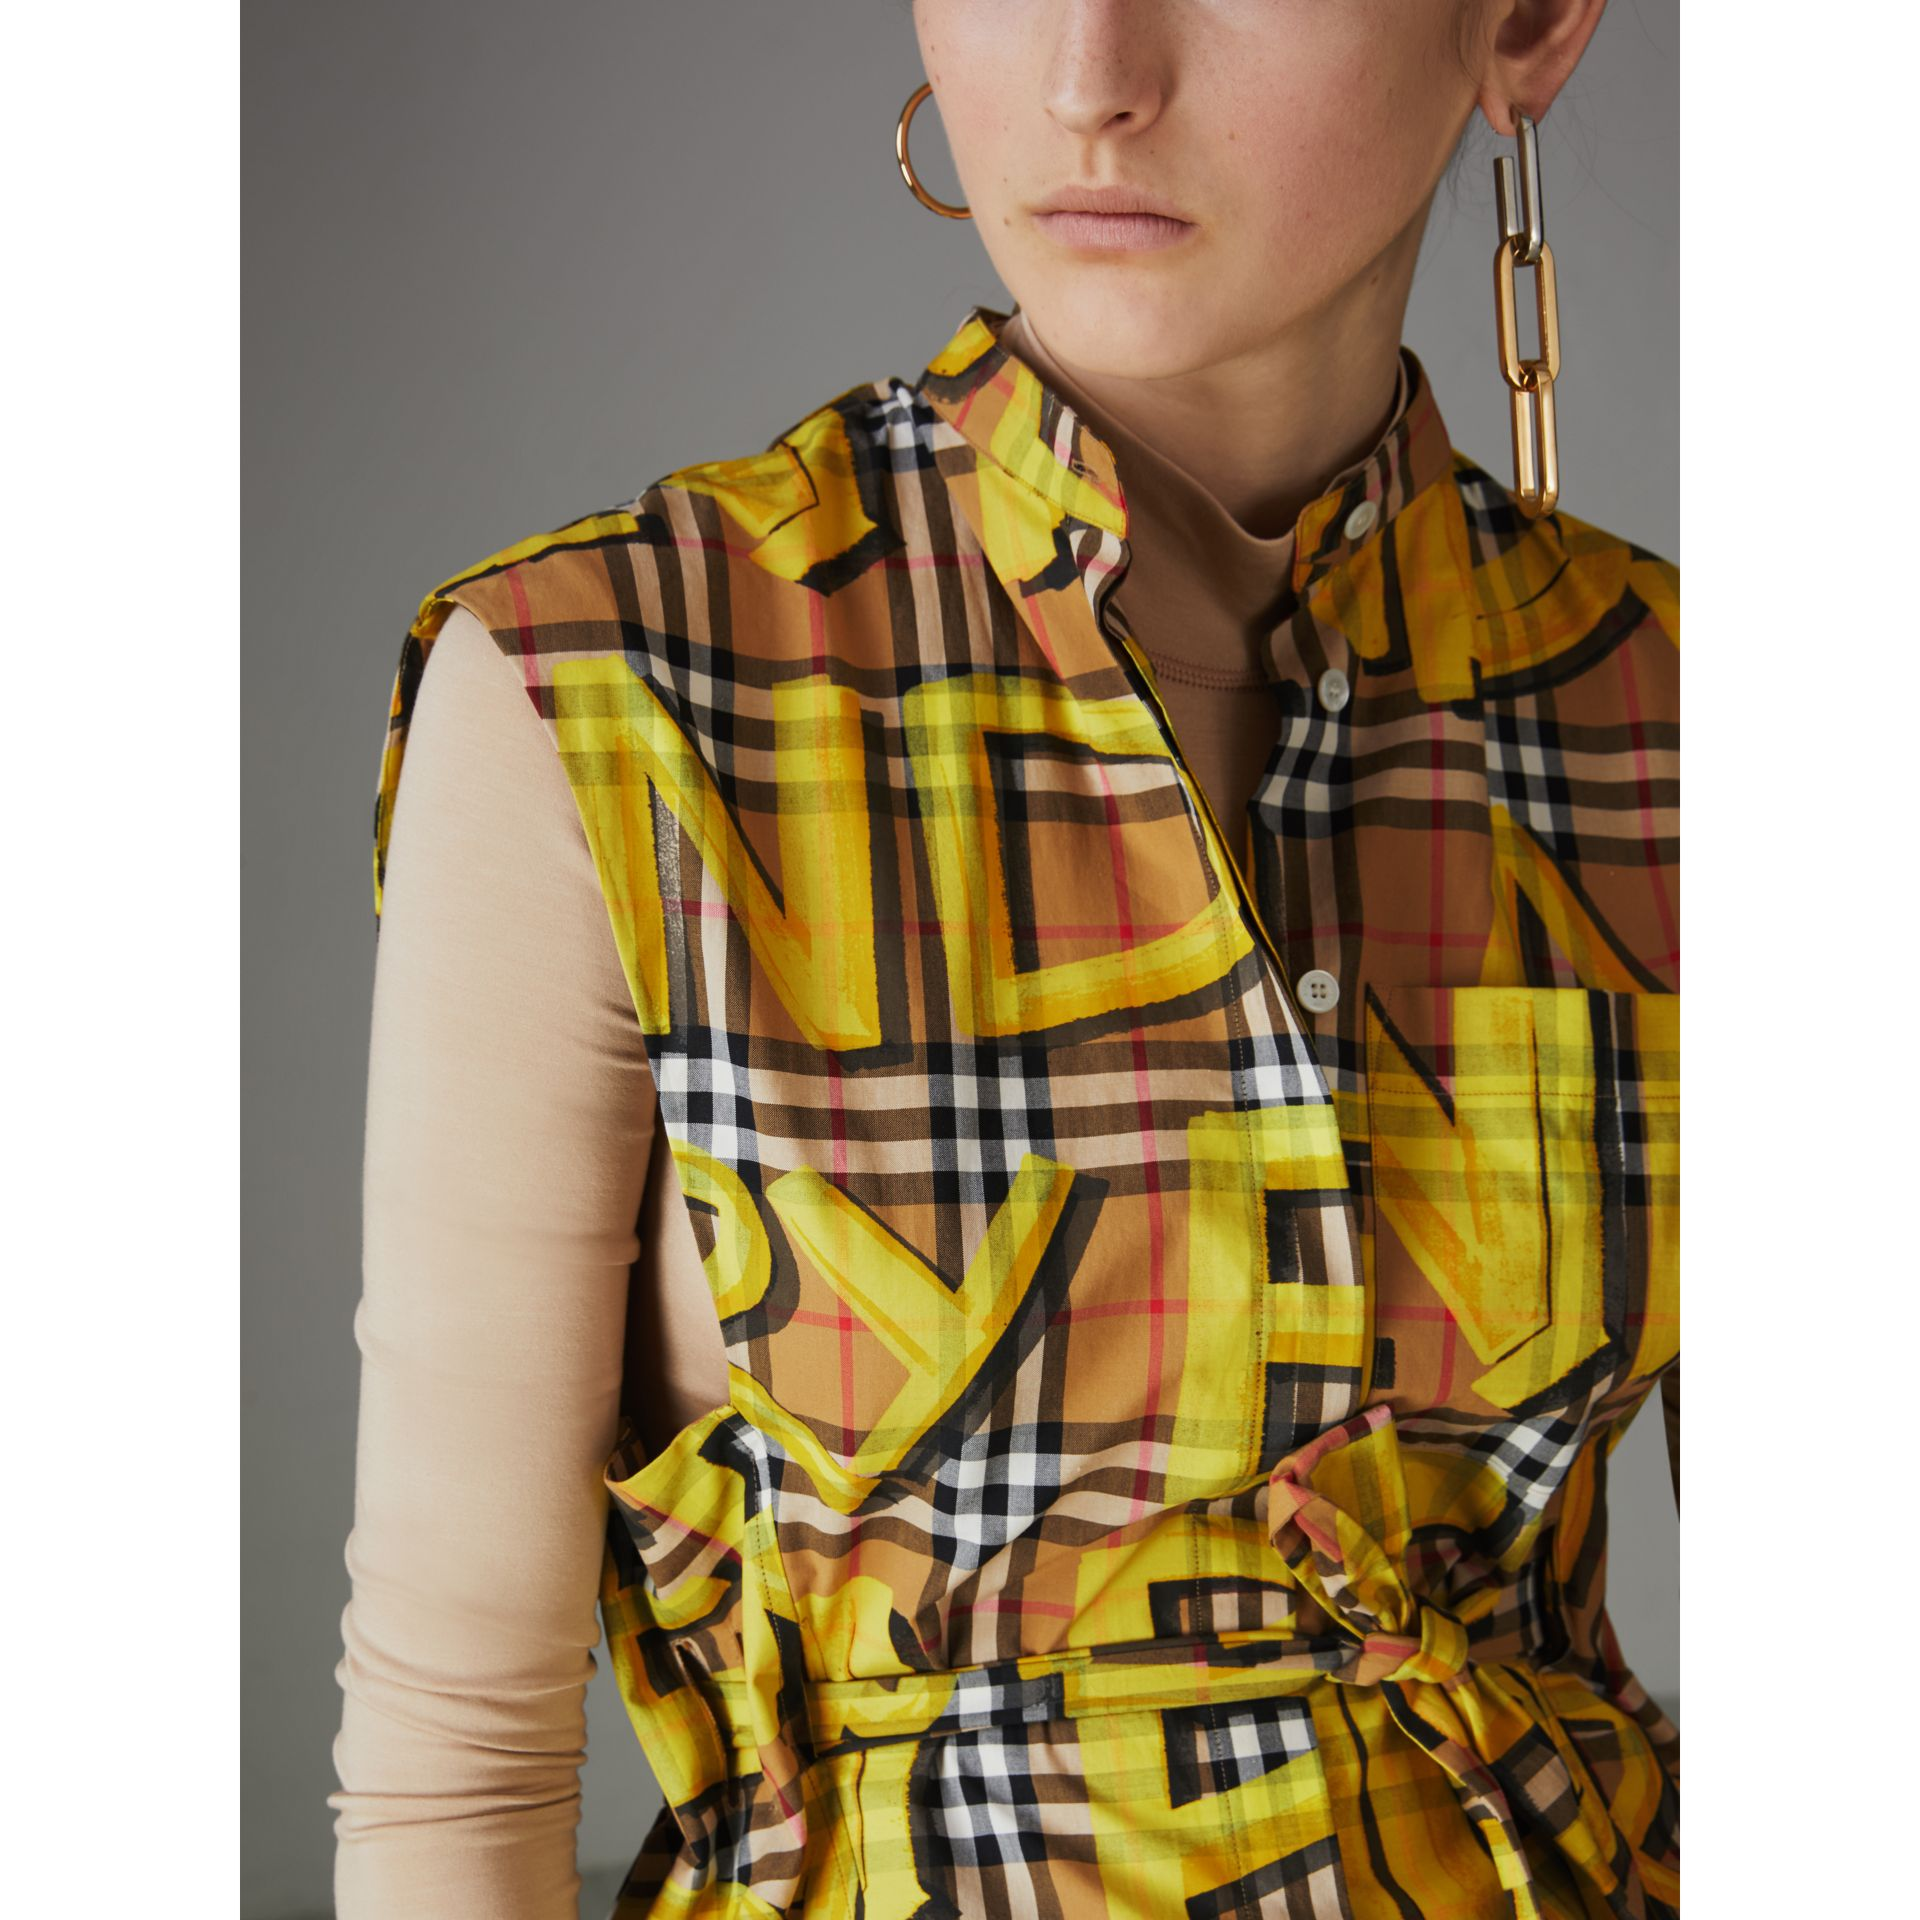 Sleeveless Graffiti Print Vintage Check Cotton Shirt in Bright Yellow - Women | Burberry - gallery image 1